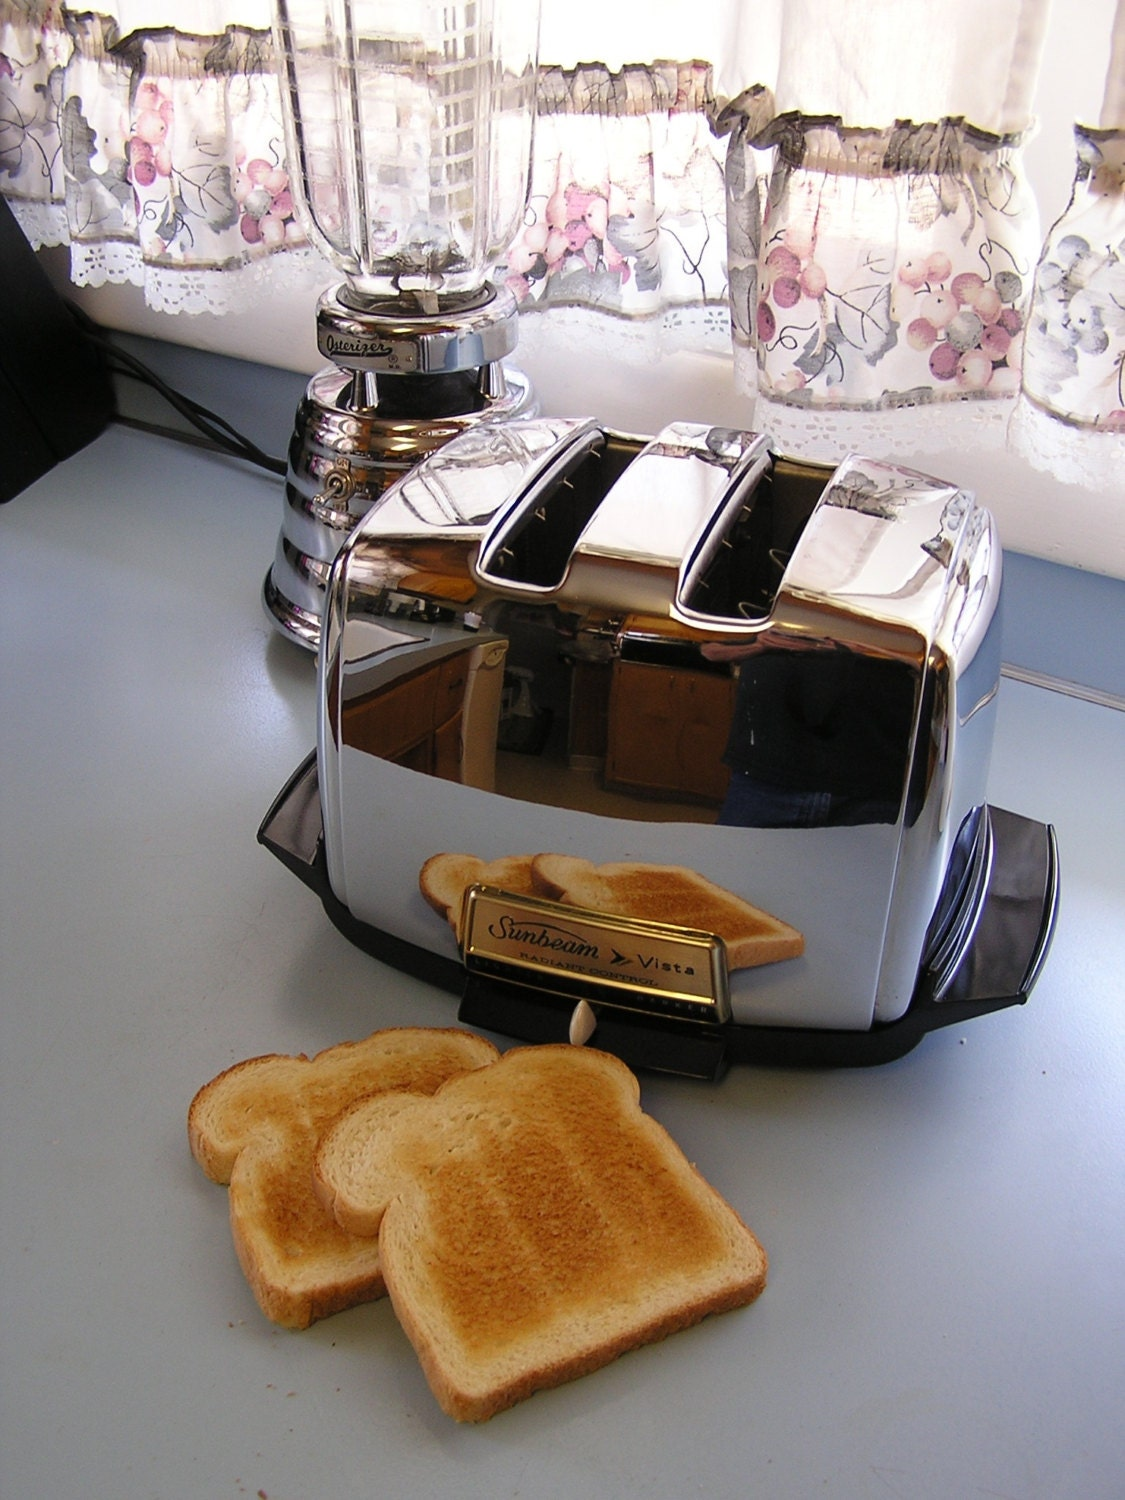 1960s Toaster With Bread ~ S sunbeam vista radiant control toaster by